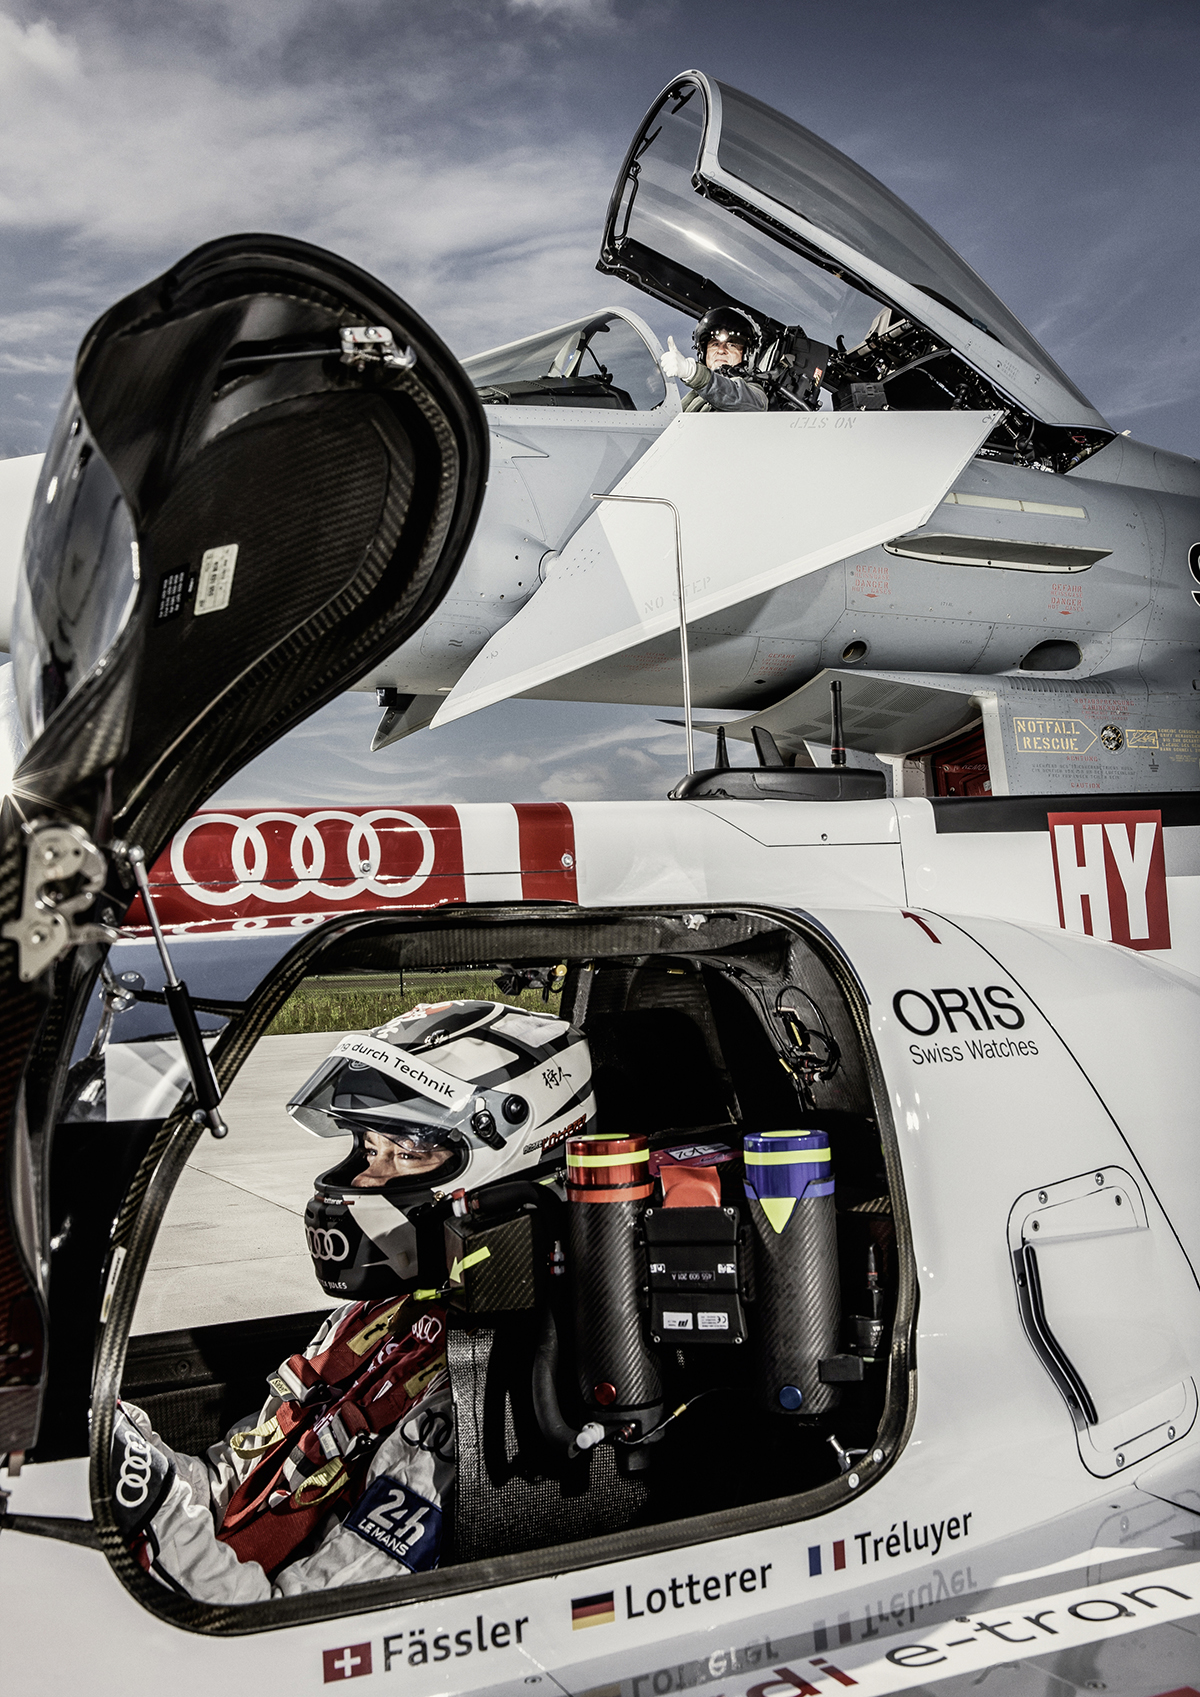 PASSION - FLIGHT CLUB Altitude differential – Krähenbühl's pilot seat is around five meters off the ground, while race driver Lotterer sits more or less directlyabove the asphalt.